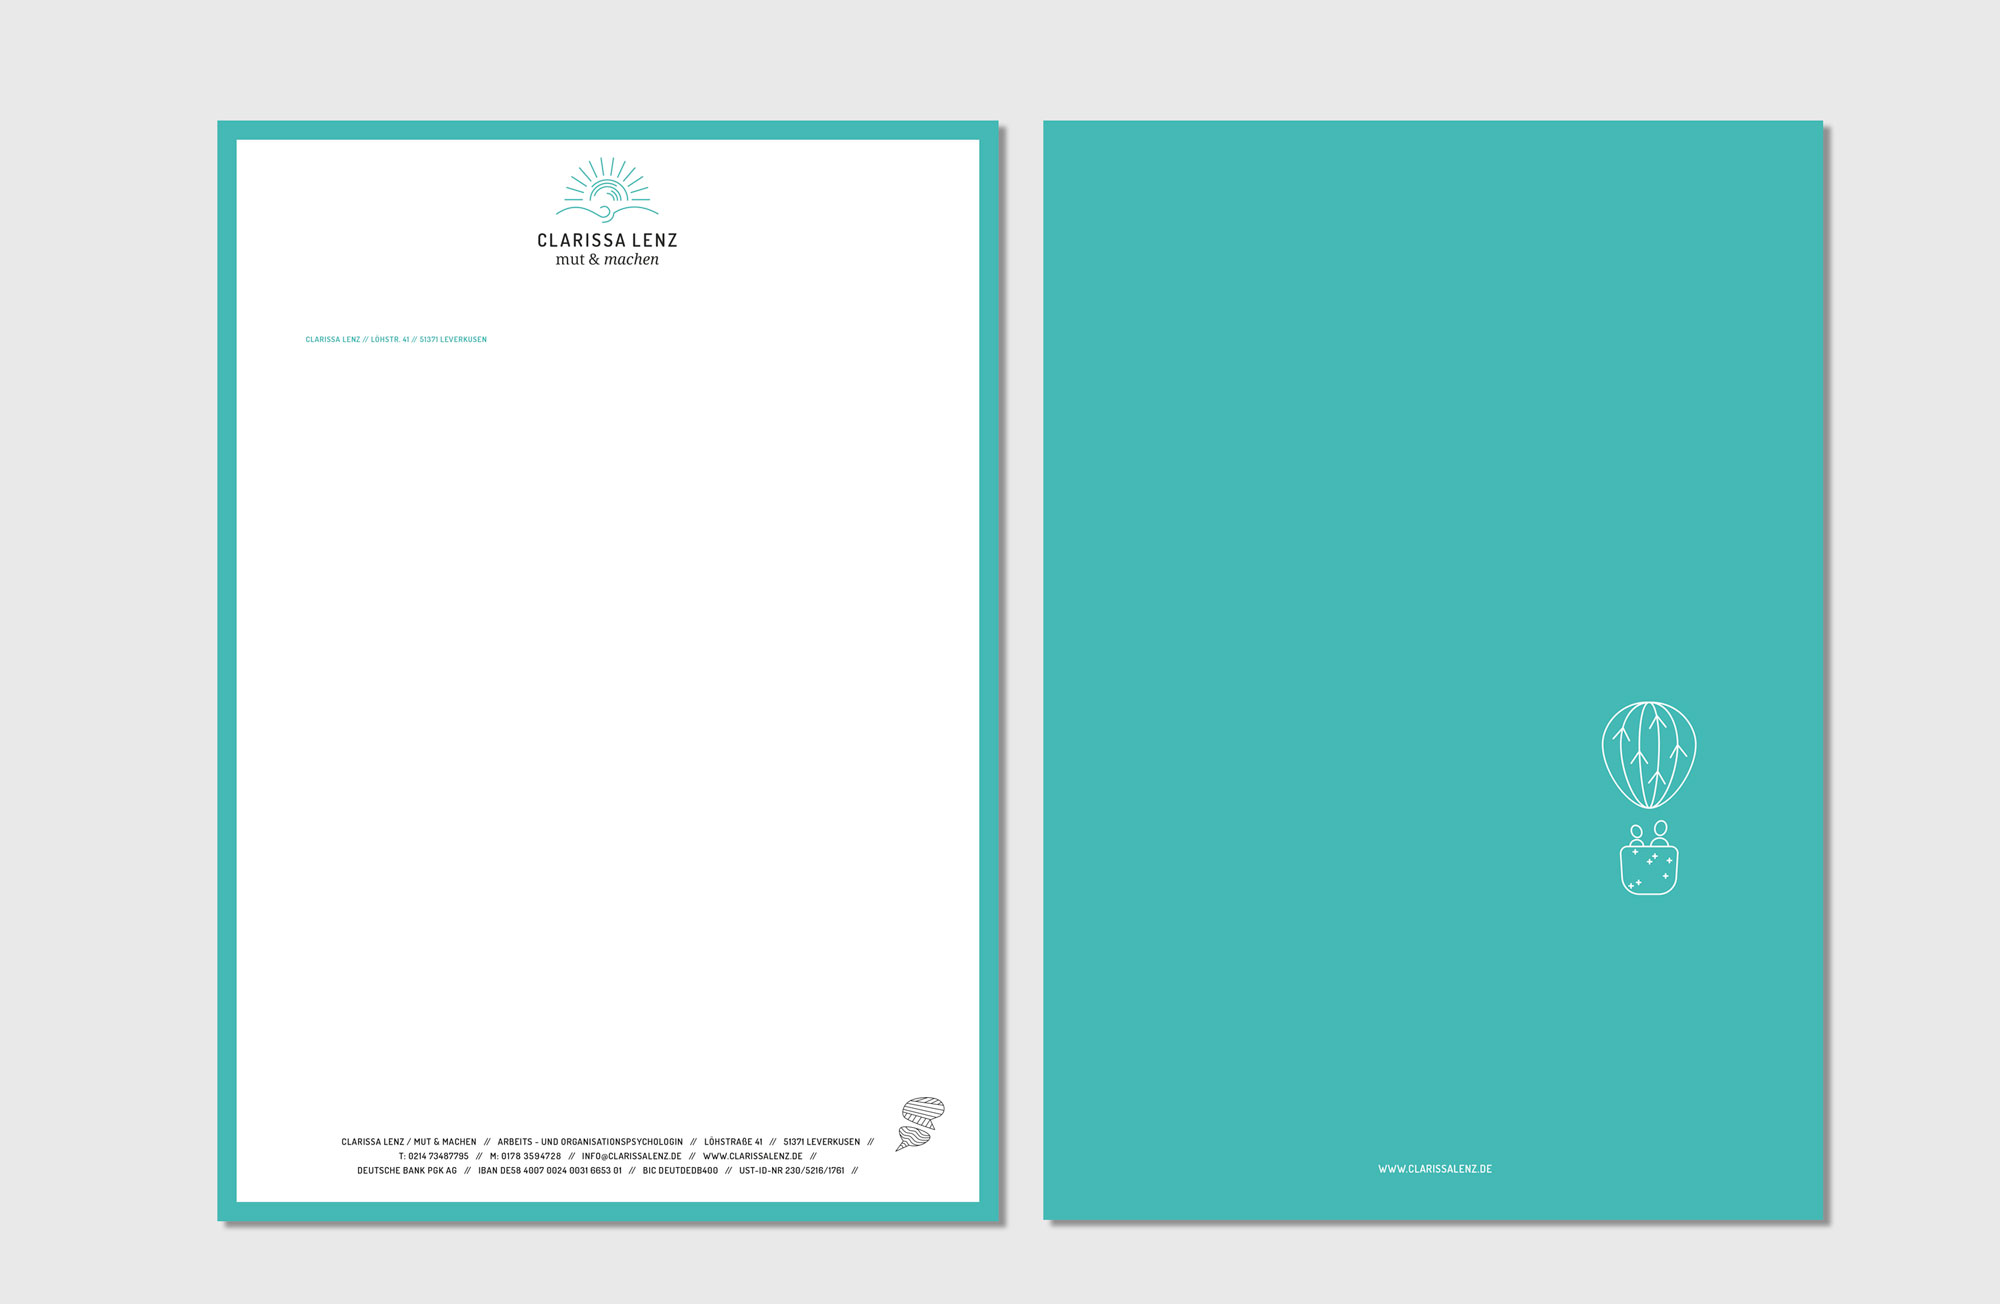 Clarissa Lenz Corporate Design Briefpapier